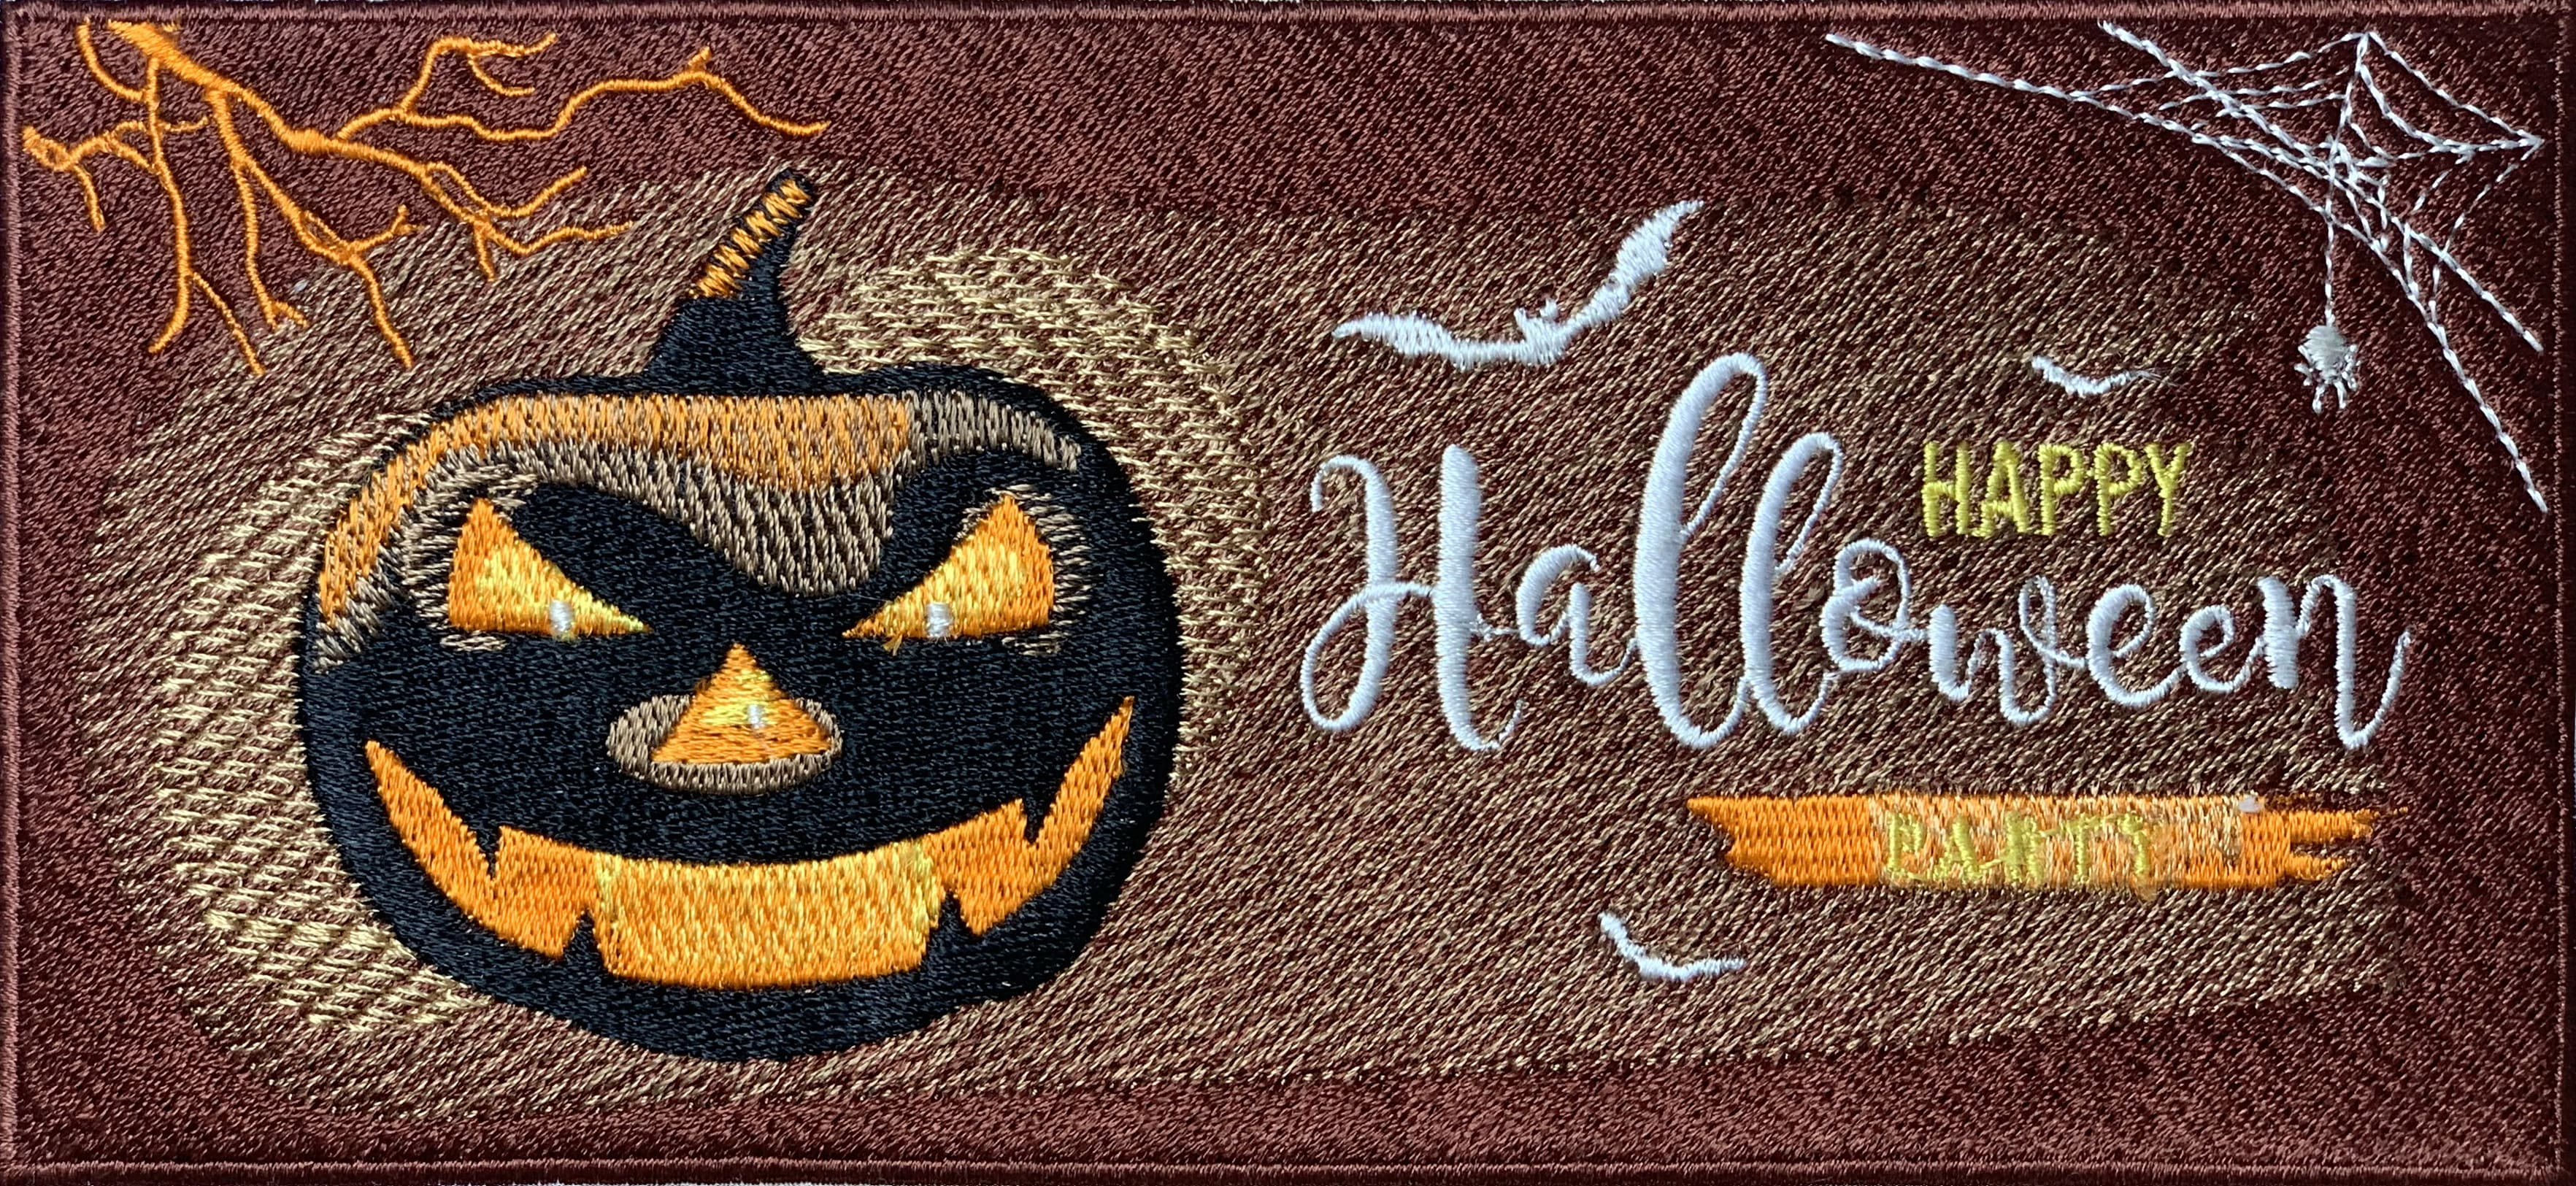 embroidery design of Halloween zombie running with a pumpkin